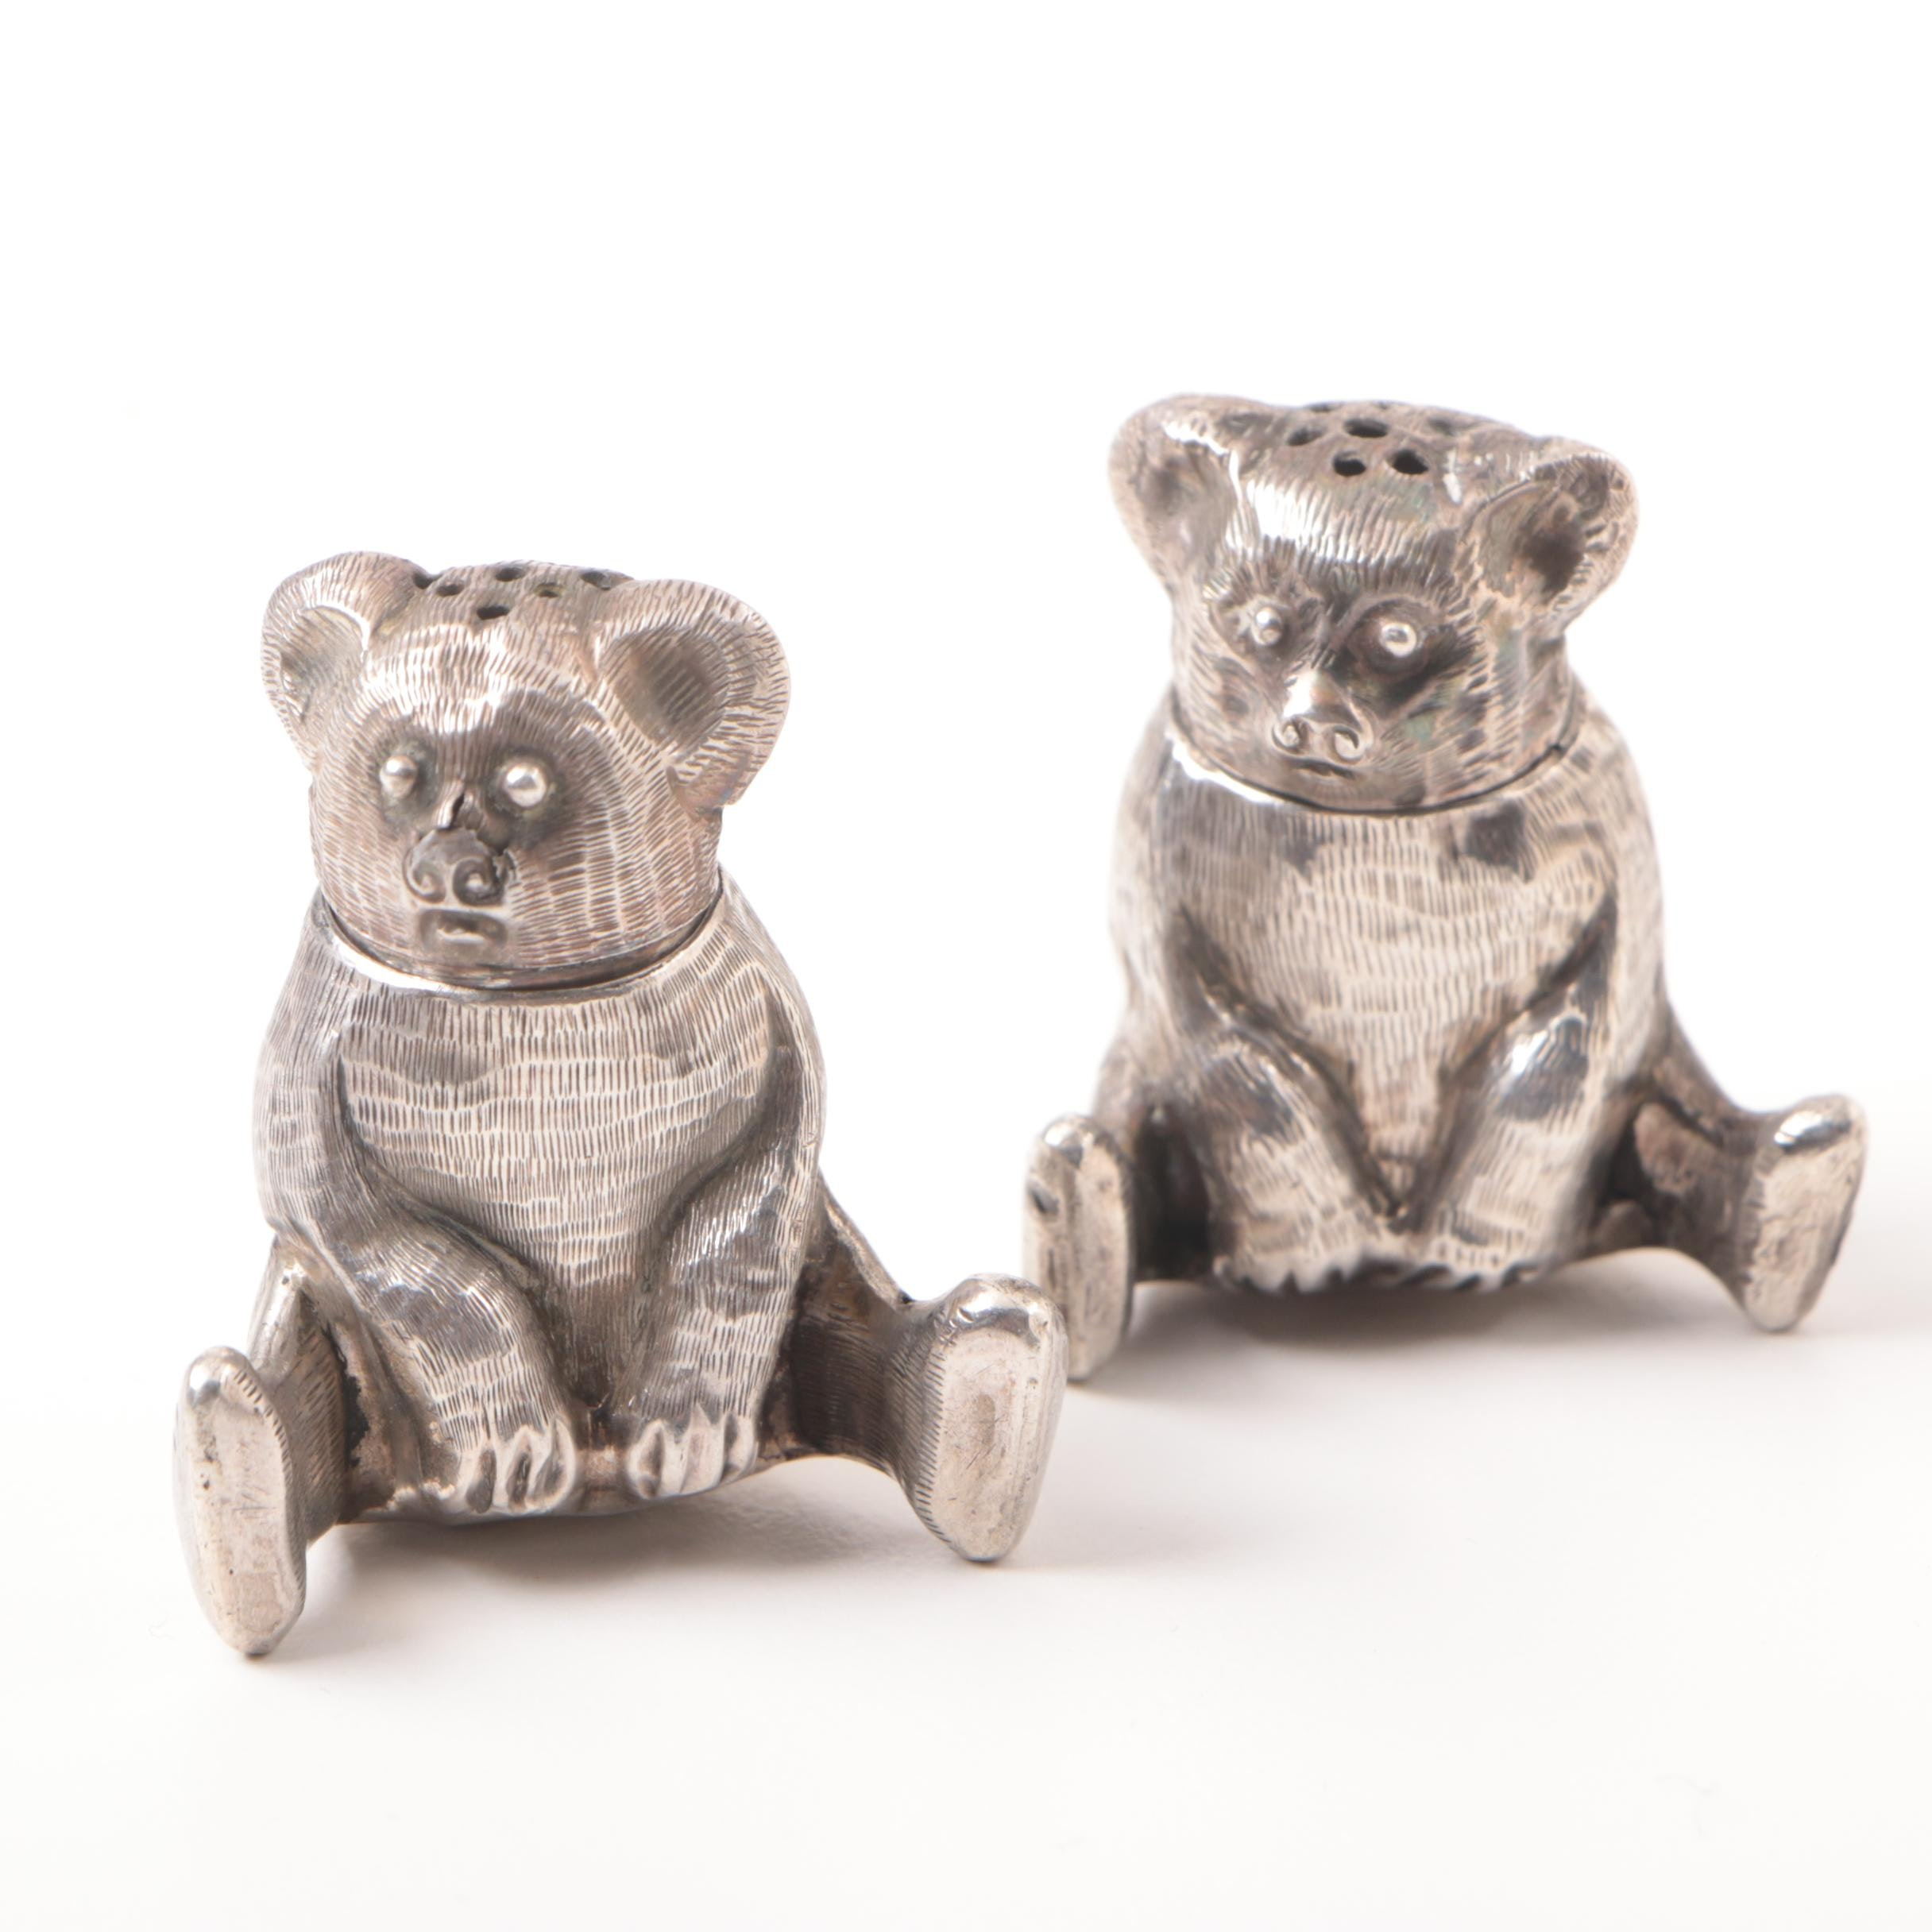 Pair of Sterling Silver Teddy Bear Salt and Pepper Shakers